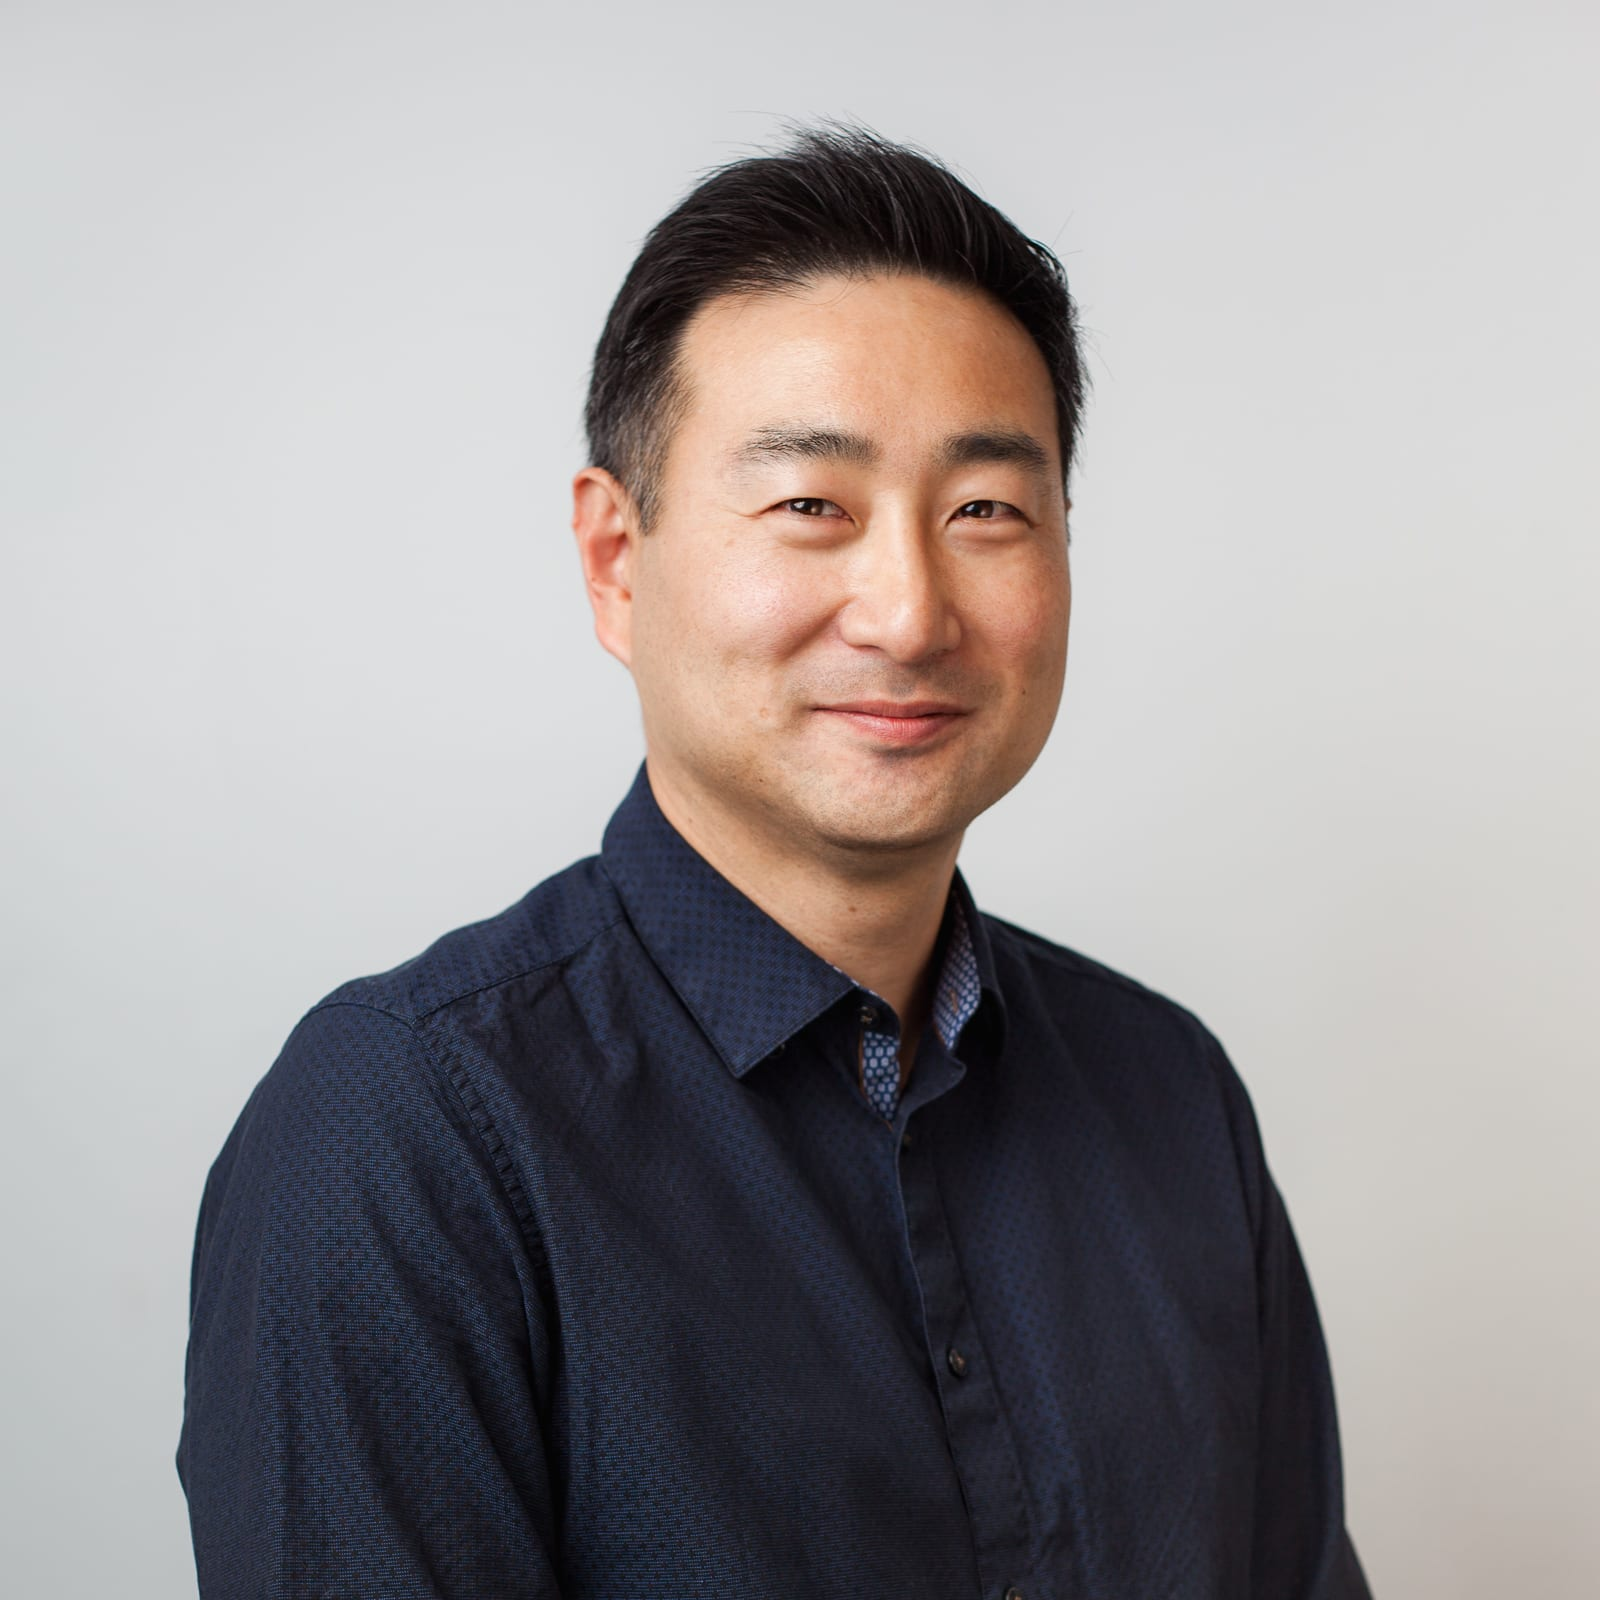 Daniel (Donghyun) Kang, Enterprise Architect